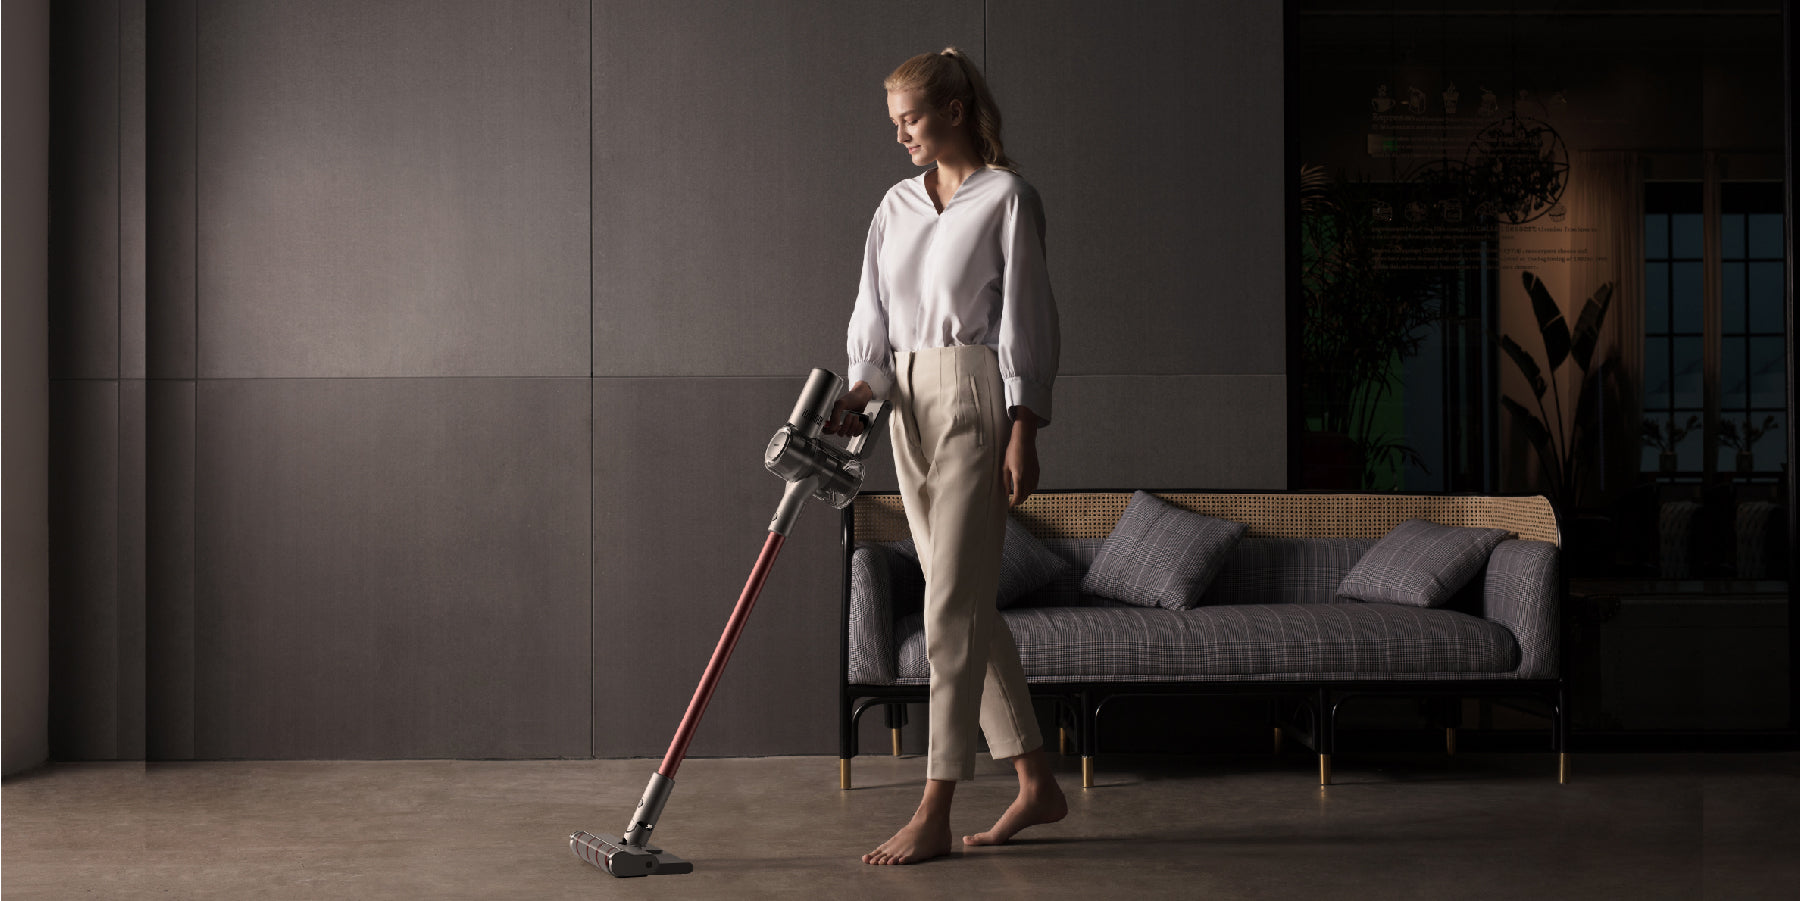 Dreame V11 Cordless Vacuum Cleaner - DreameTime - A New Era for Vacuum Cleaner